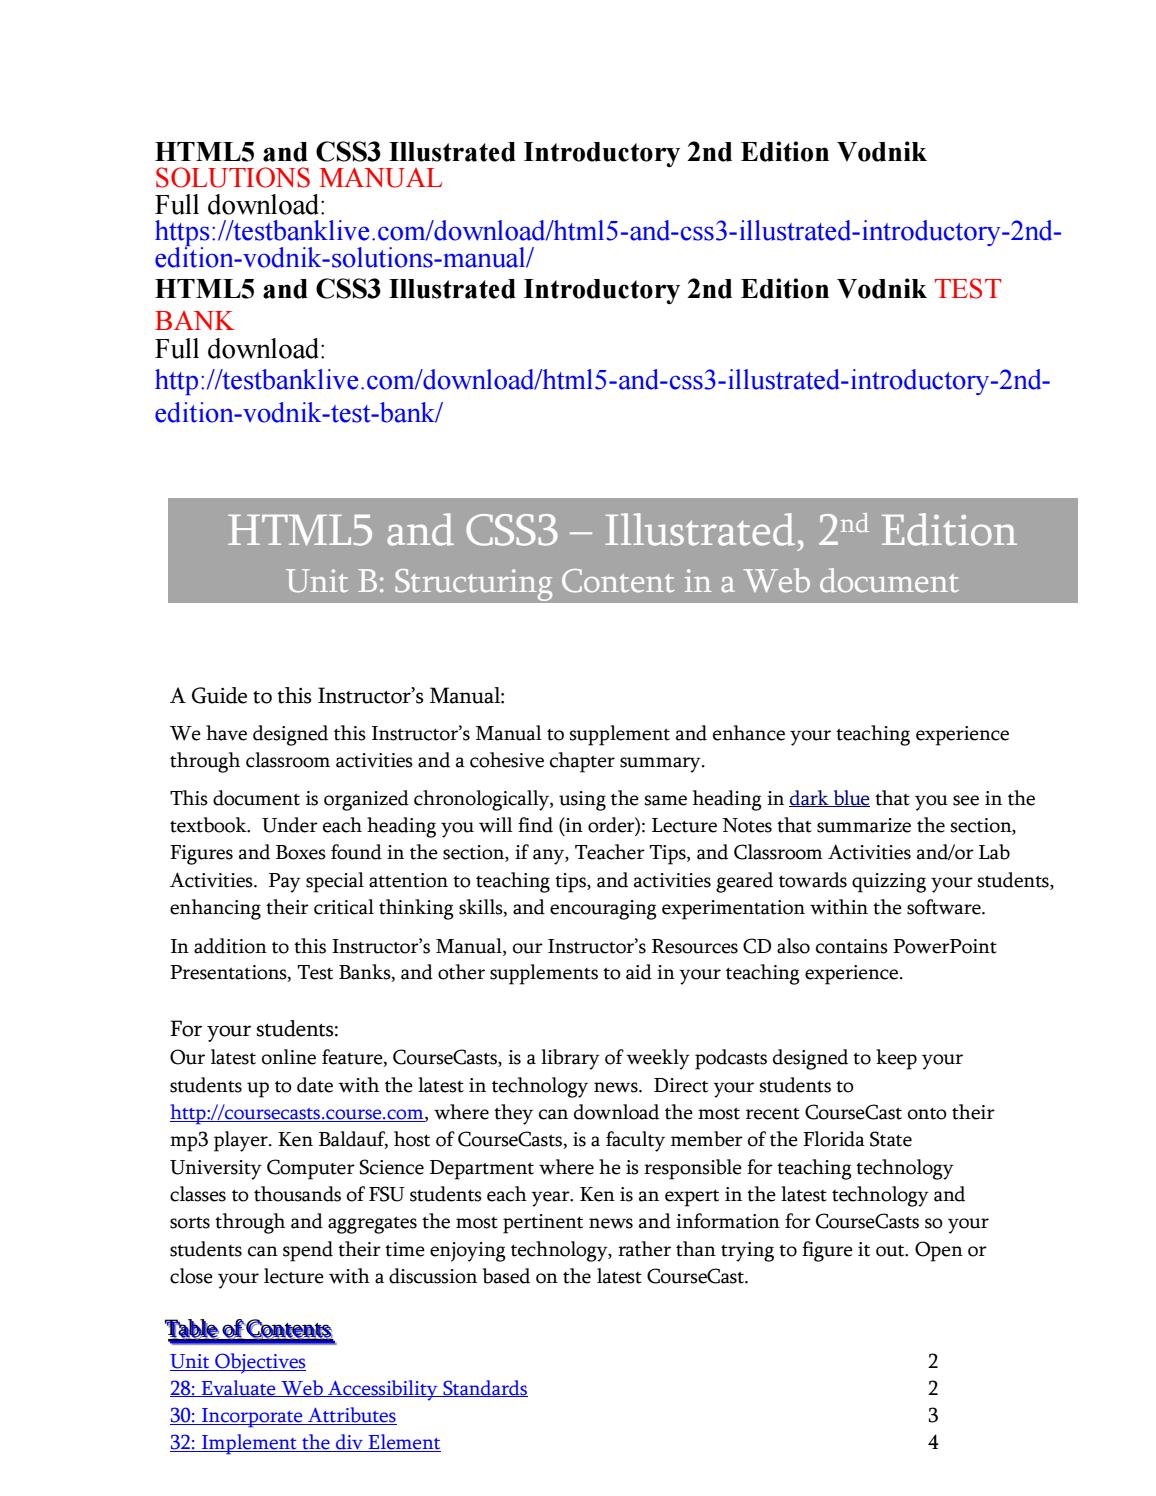 Html5 and css3 illustrated introductory 2nd edition vodnik solutions manual  by GropperMan - issuu